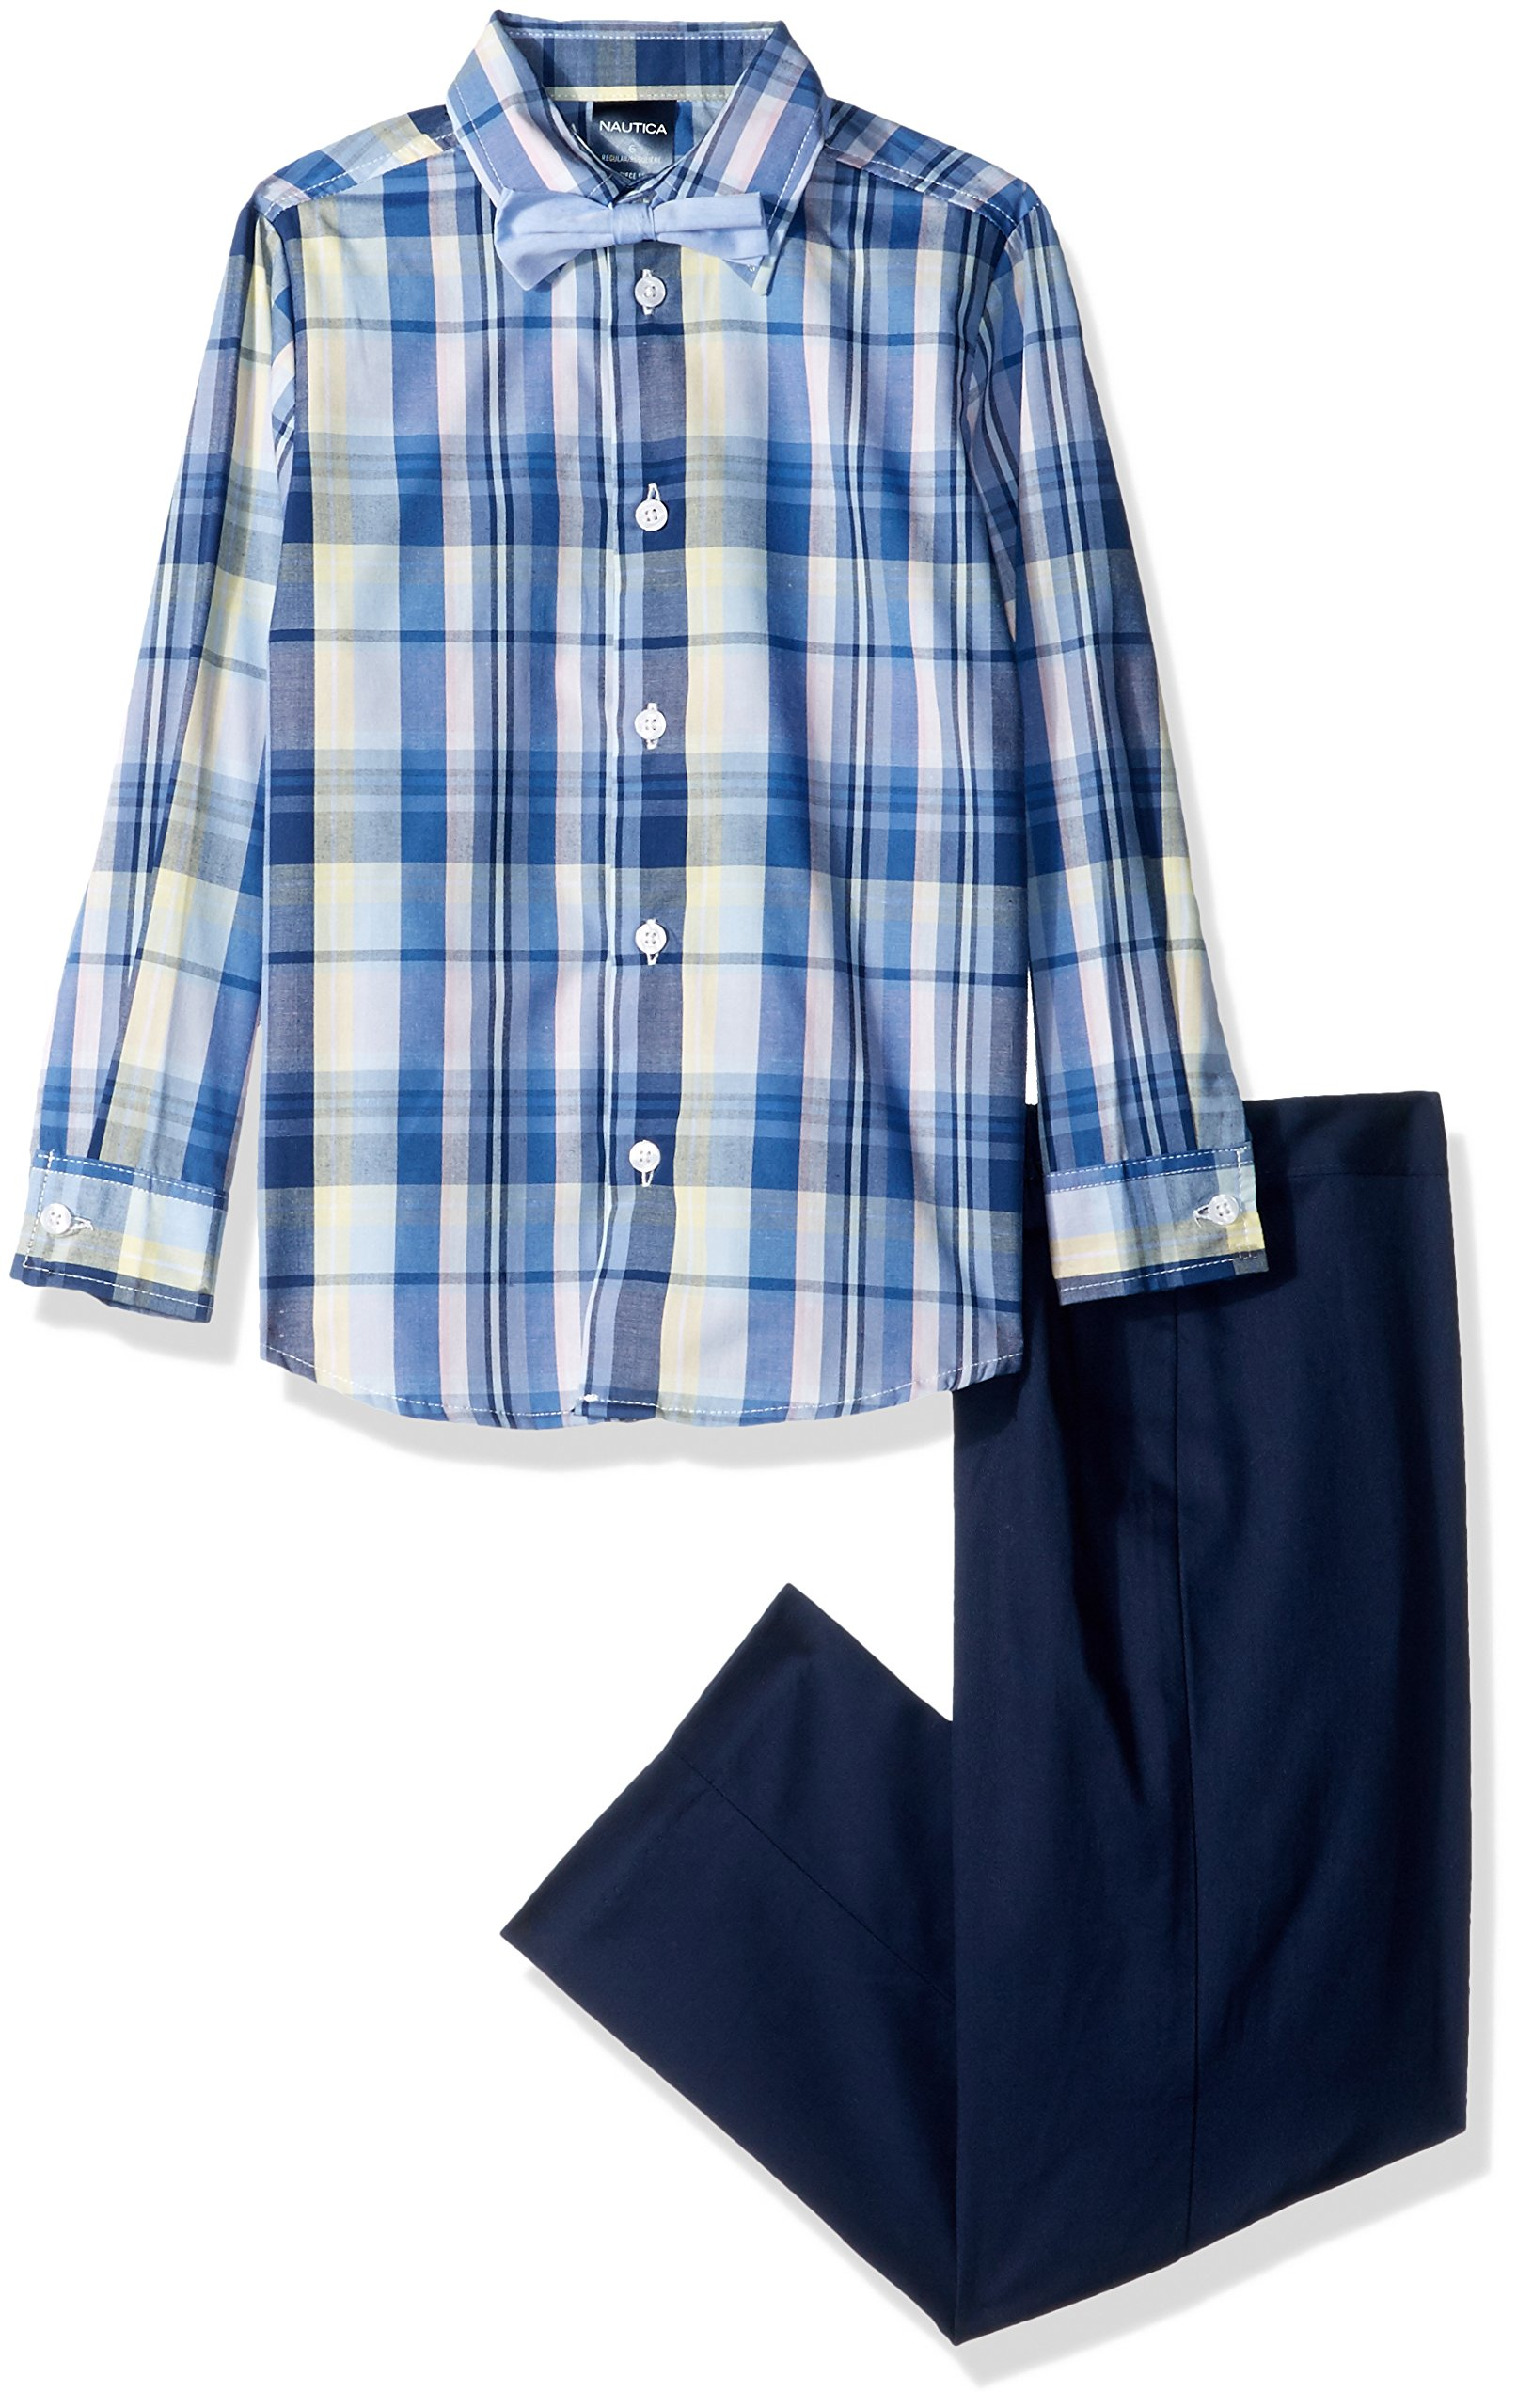 Nautica Little Boys' Three Piece Dresswear Set With Shirt, Pant and Bowtie, Madras Navy Blazer, 4